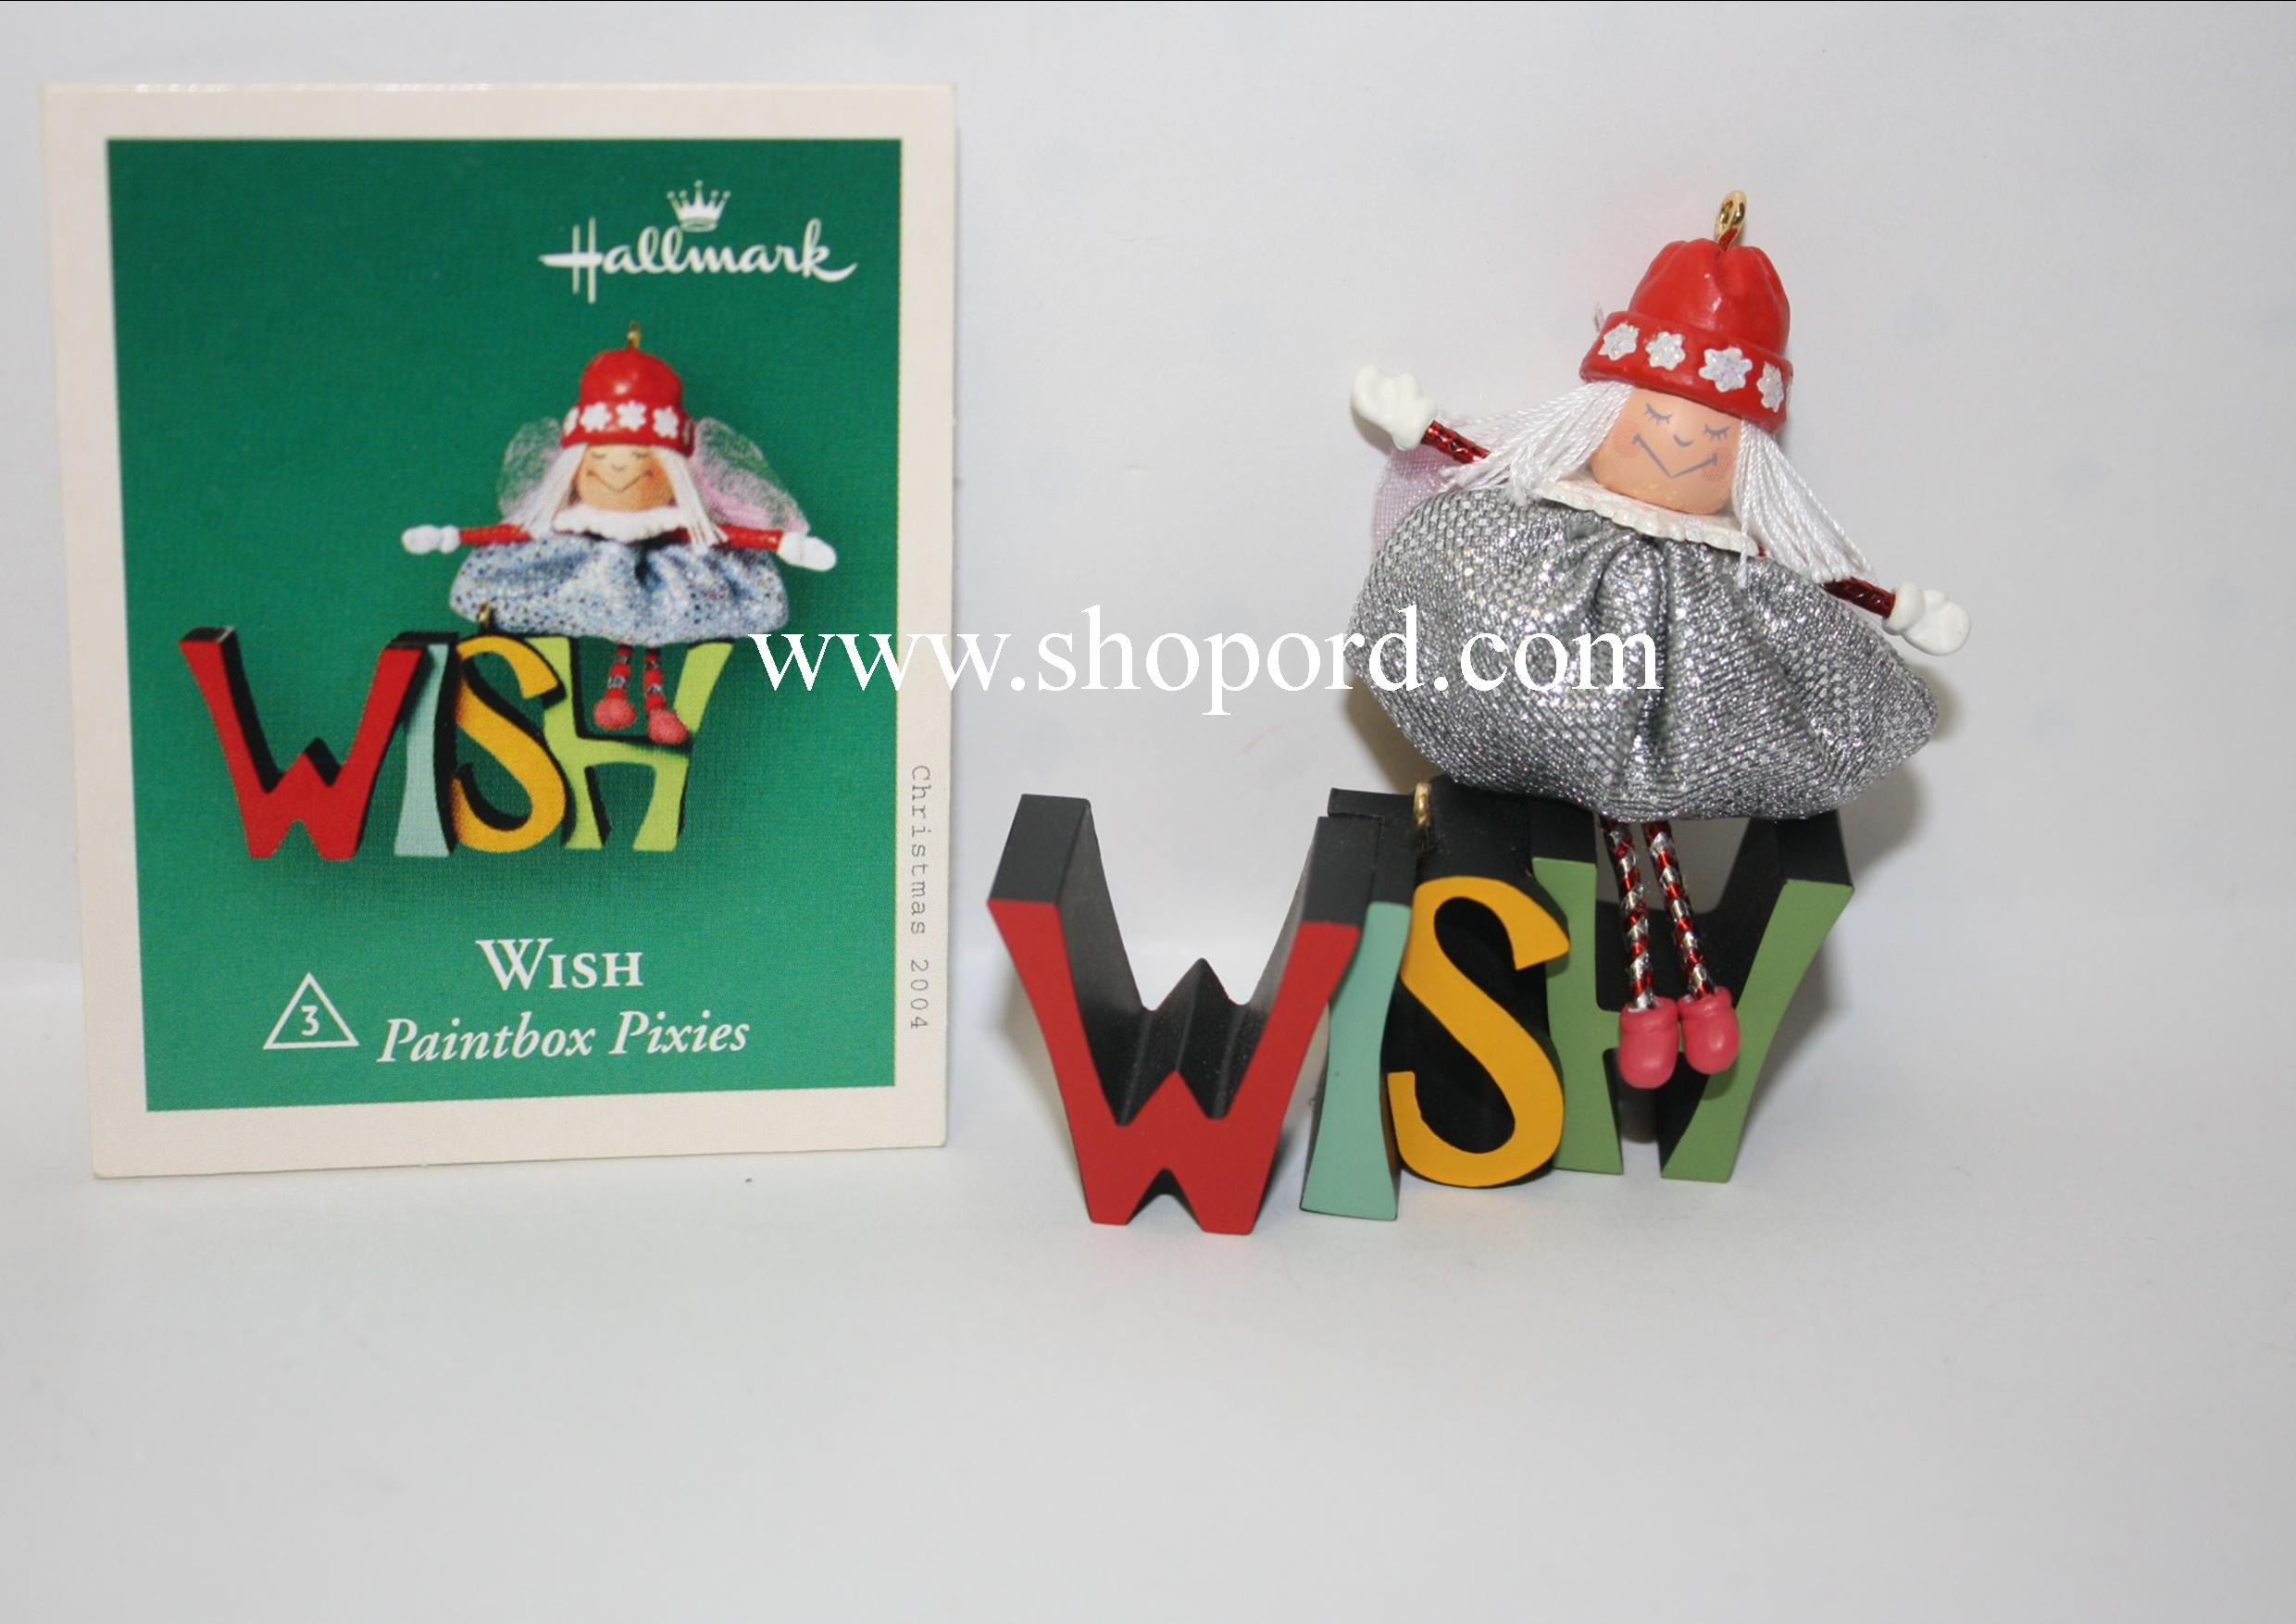 Hallmark 2004 Wish Paintbox Pixies set of 2 Miniature Ornament 3rd and final in the series QXM5174